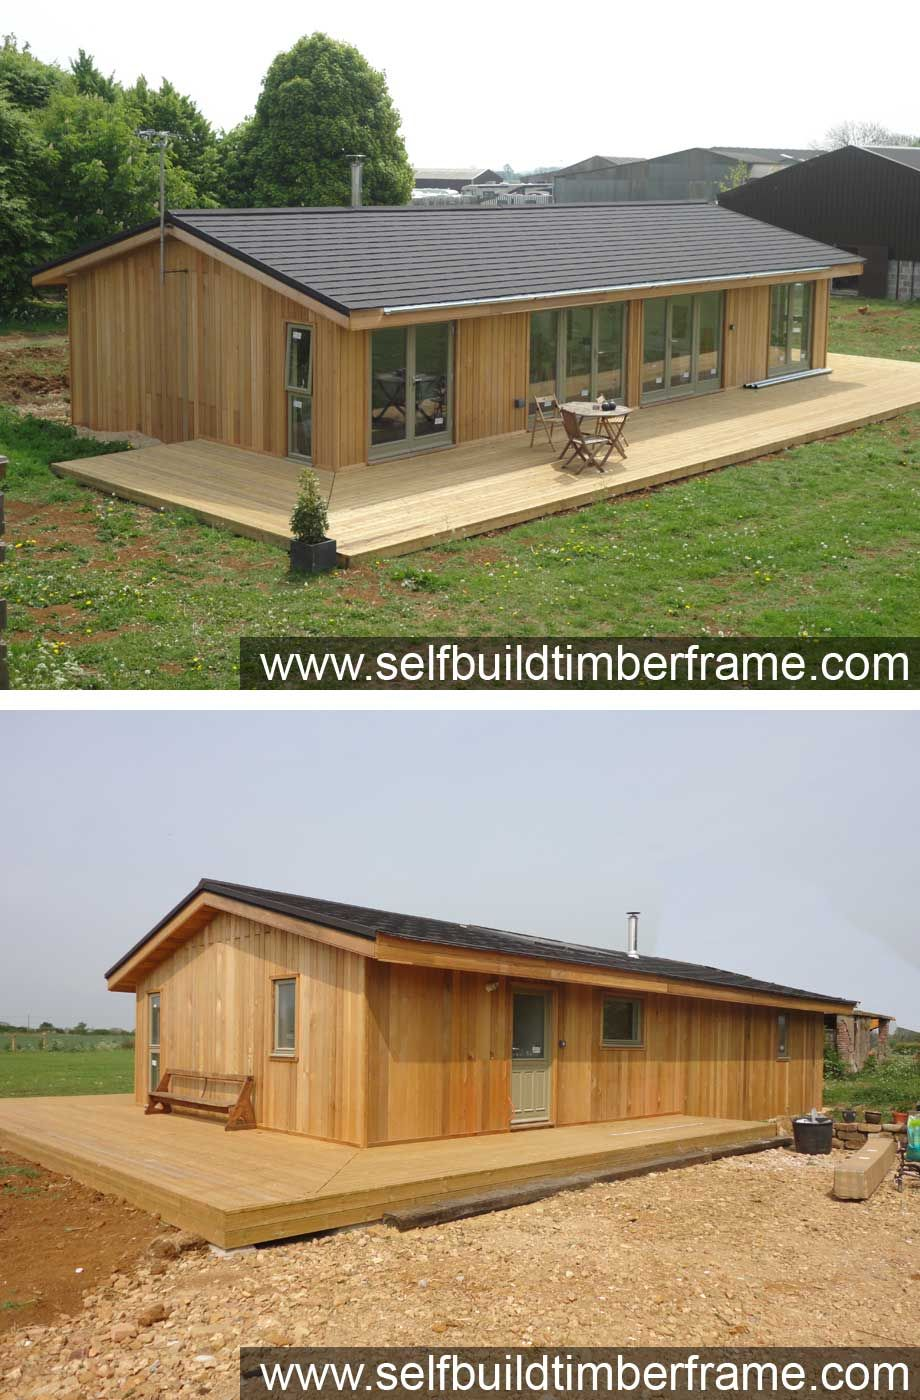 Small One Bedroom Mobile Homes Cedar Mobile Homes For Sale Self Build Twin Unit Mobile Home